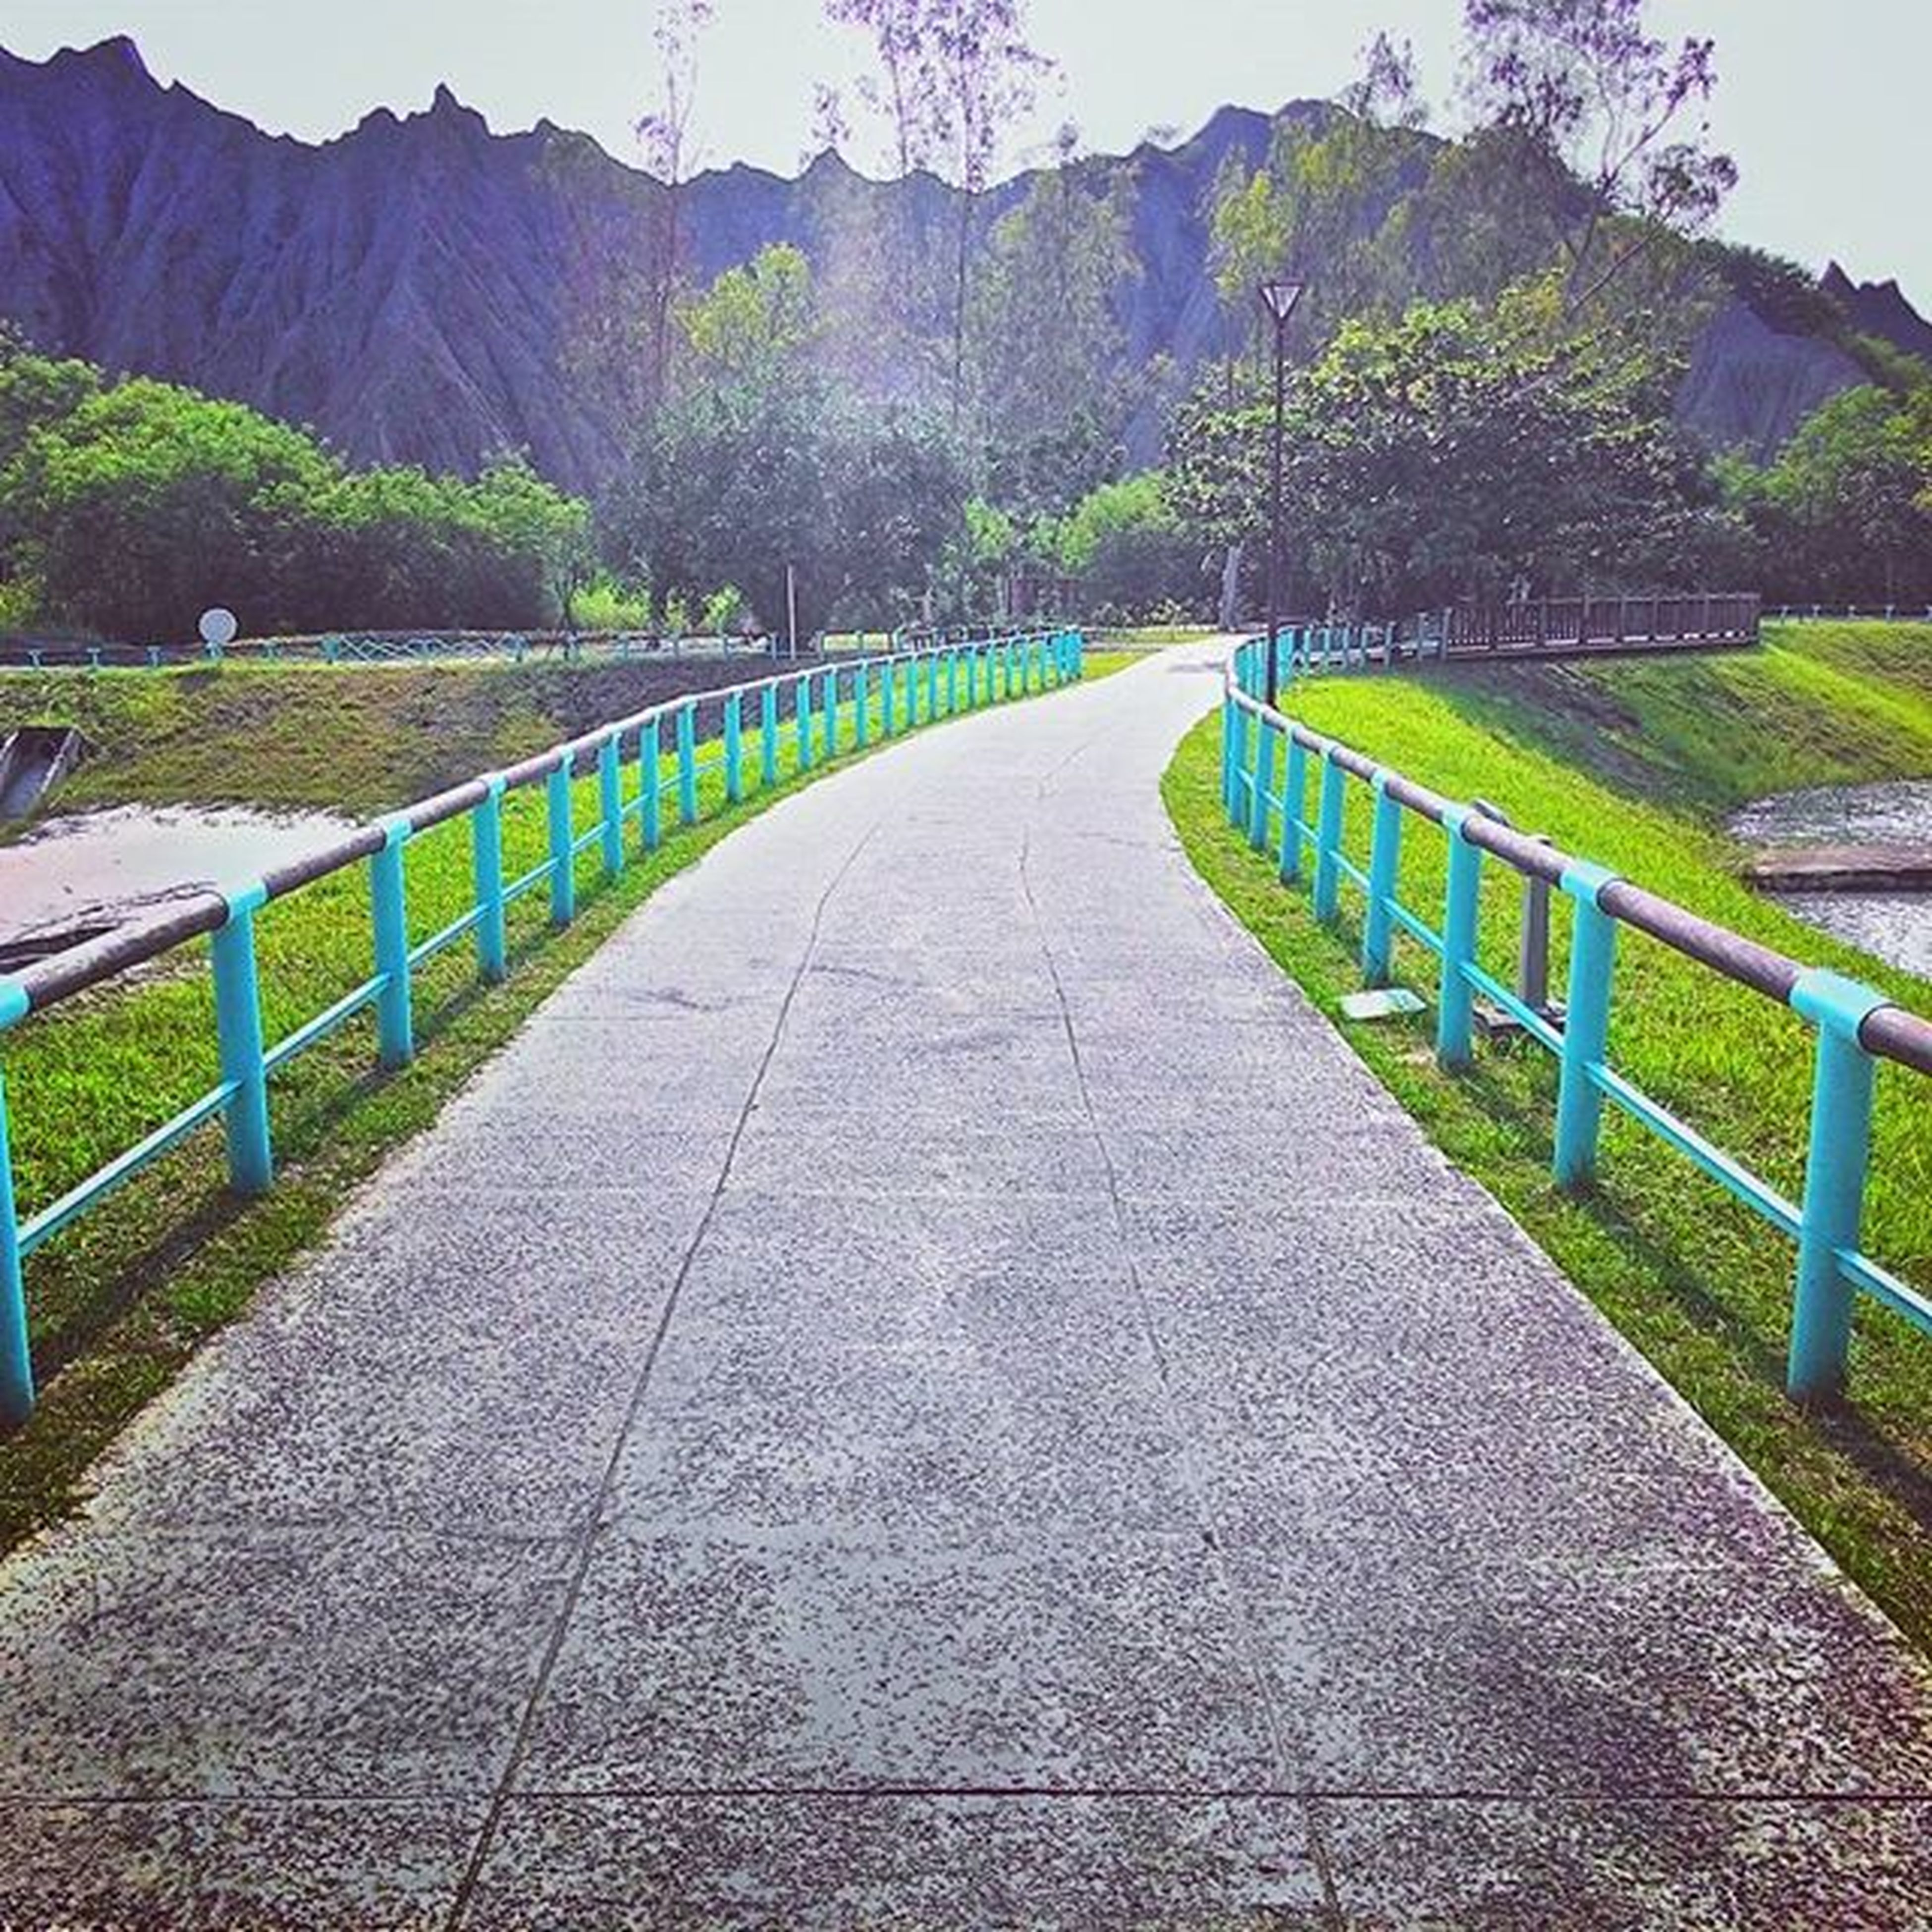 the way forward, mountain, tranquility, tranquil scene, tree, scenics, landscape, diminishing perspective, beauty in nature, nature, railing, road, vanishing point, grass, footpath, mountain range, green color, sky, non-urban scene, idyllic